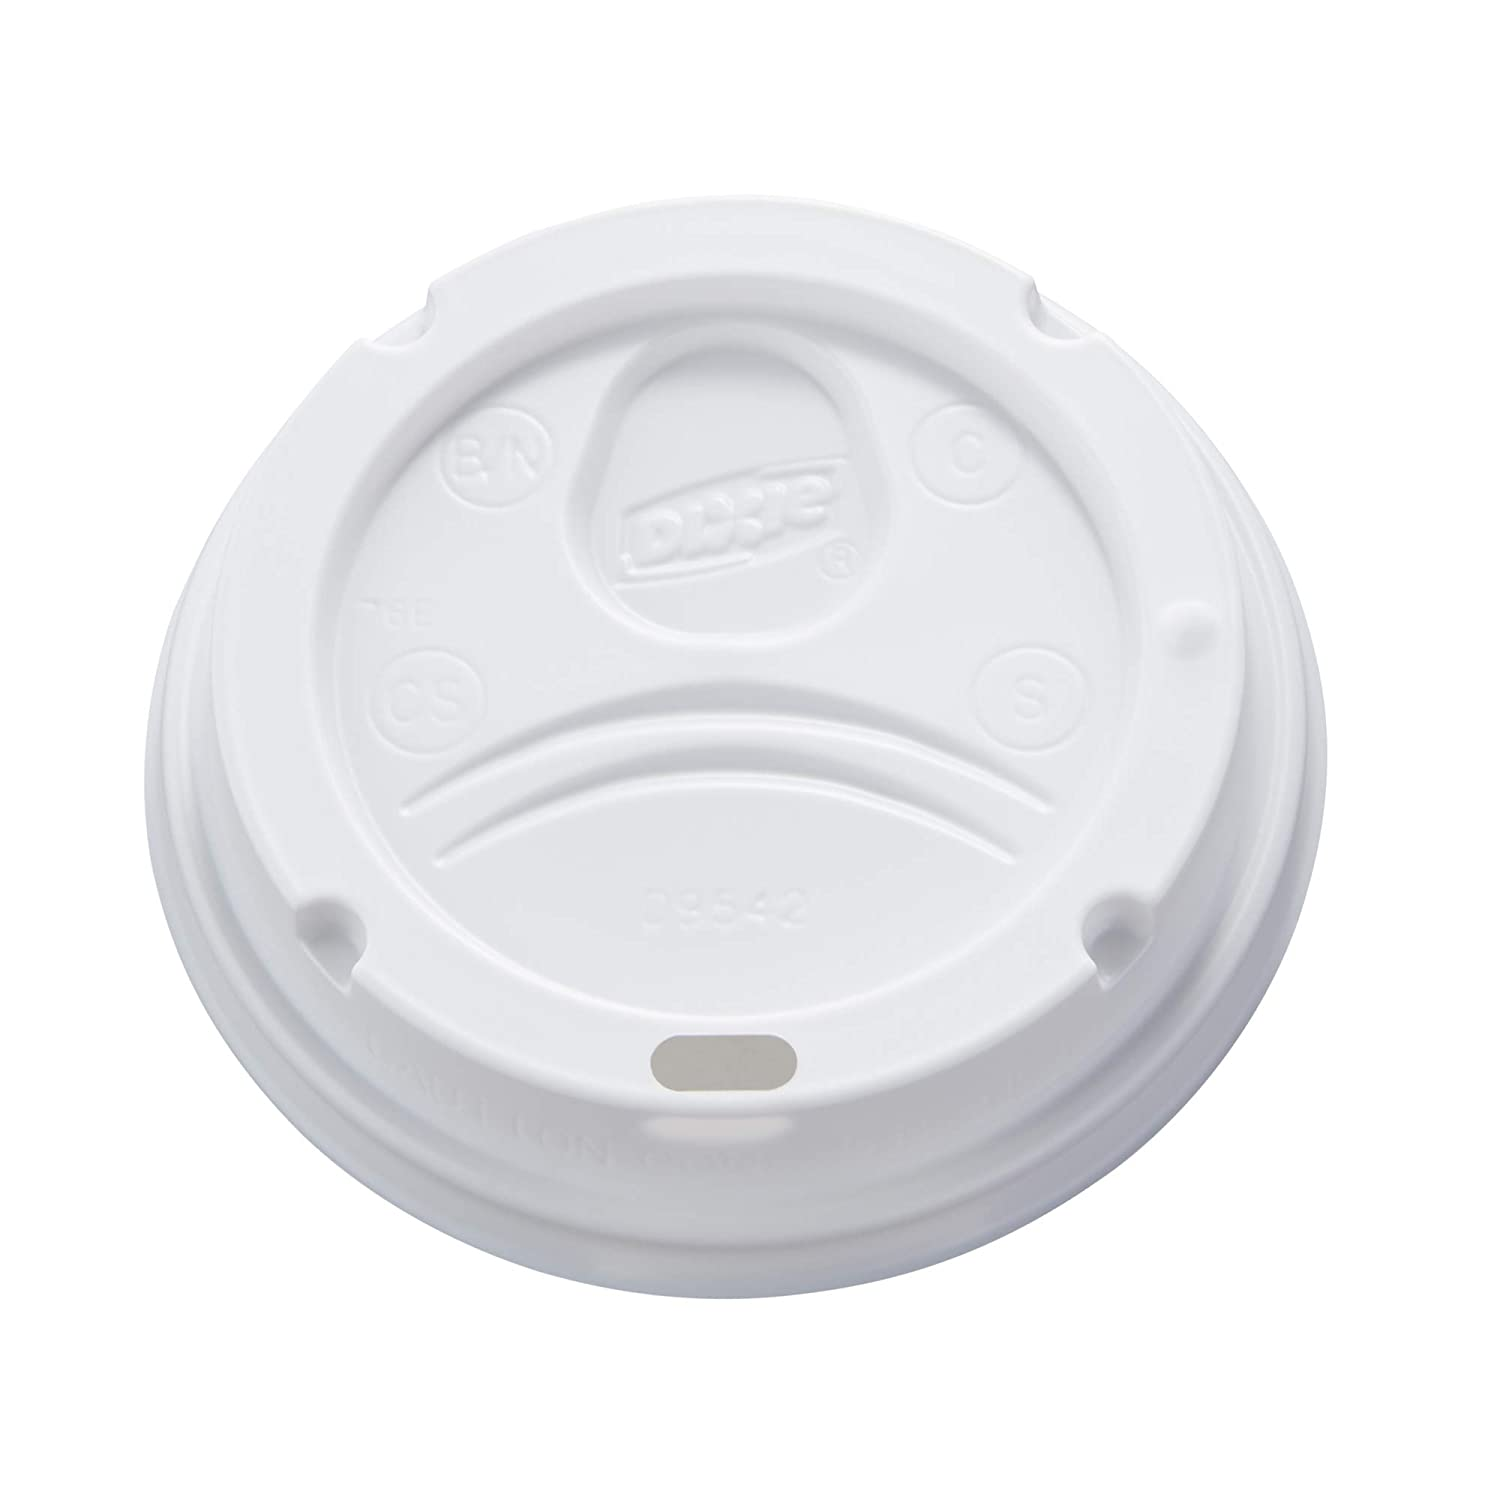 Dixie 10-20 oz. Dome Hot Coffee Cup Lid by GP PRO (Georgia-Pacific), White, 9542500DX, 500 Count (10 sleeves of 50 lids)